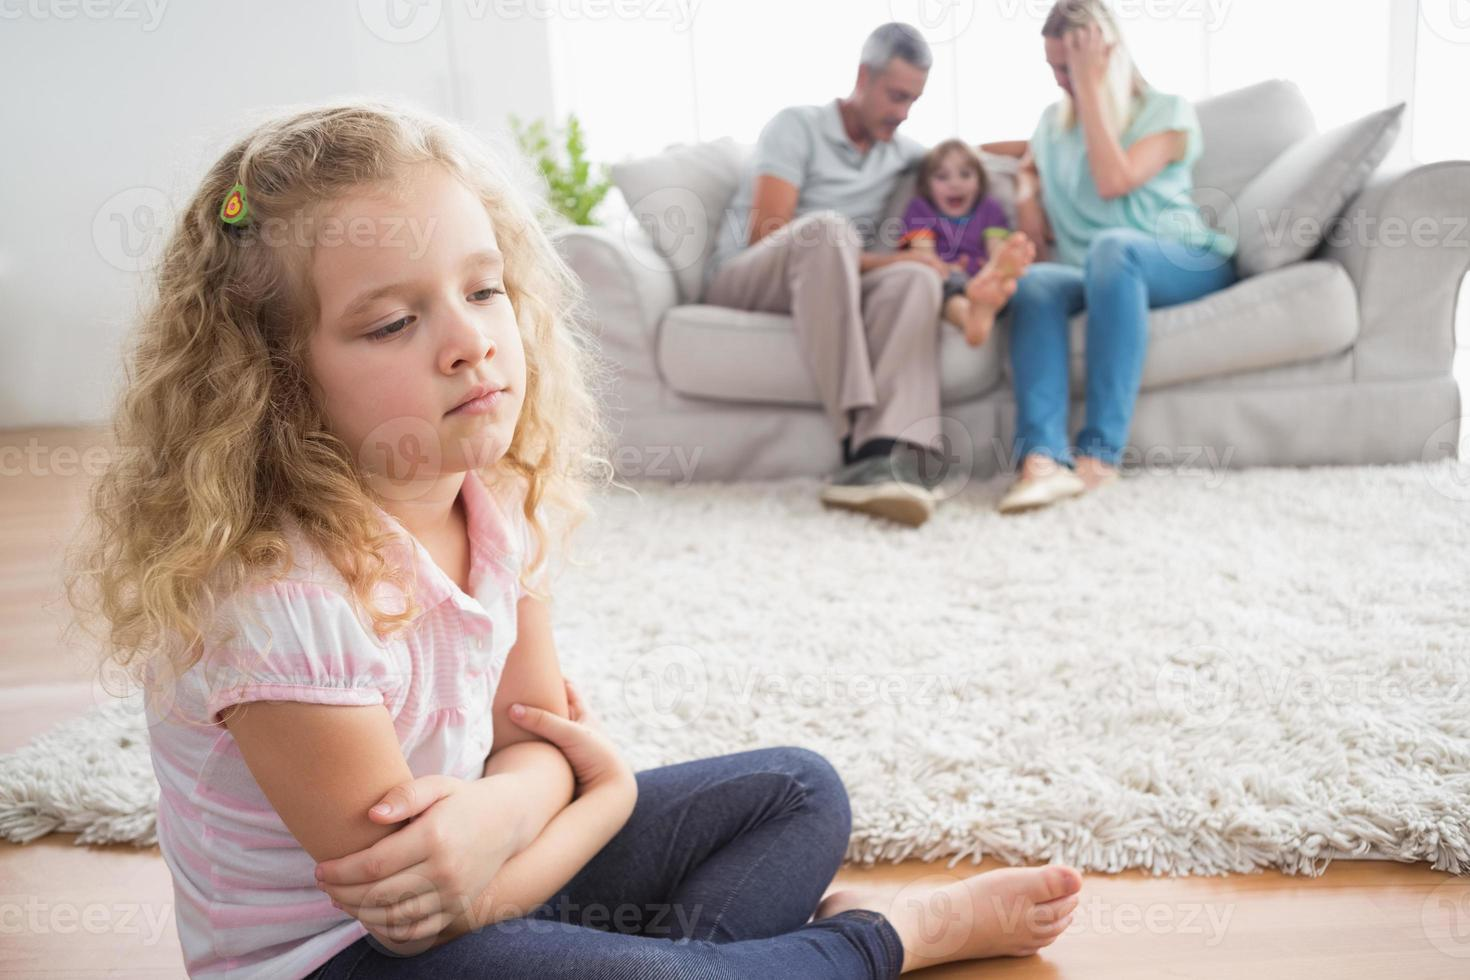 Upset girl sitting on floor while parents enjoying with brother photo